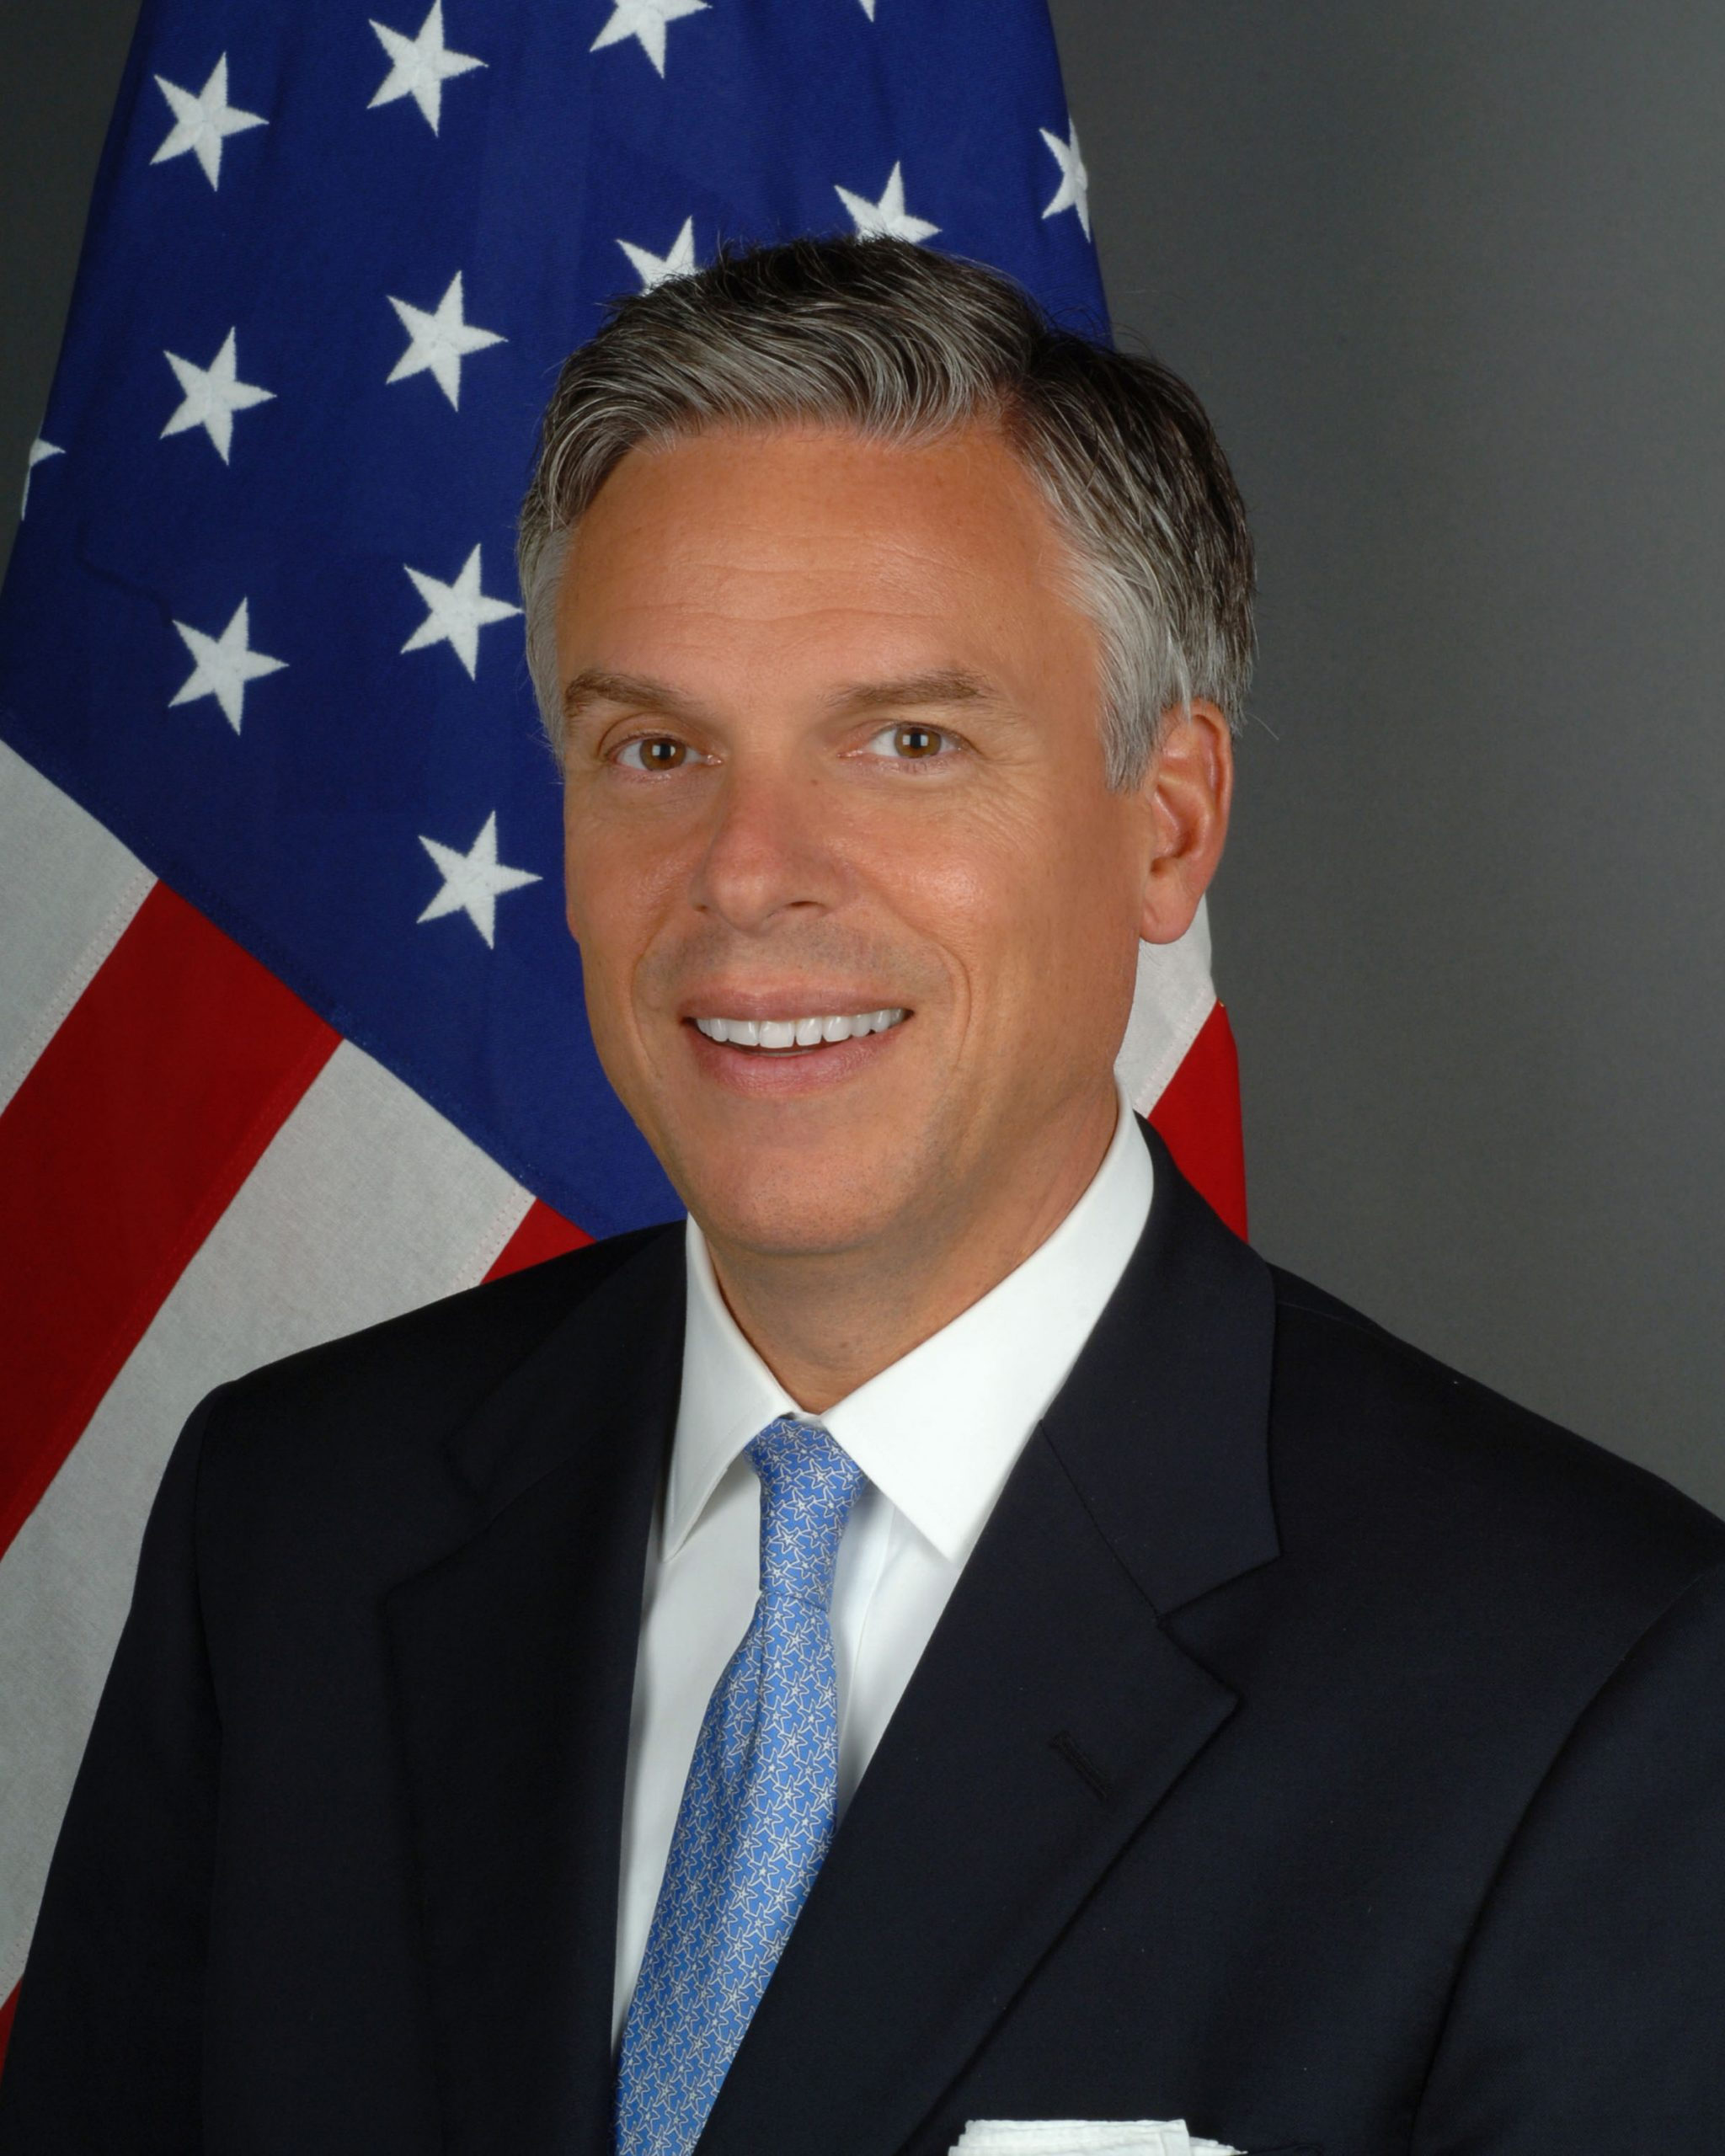 United States Ambassador to China and former Governor of Utah Jon Huntsman, Jr. will deliver the commencement address at the 2010 commencement ceremony, to be held on Friday, May 7 in the Jon M. Huntsman Center.